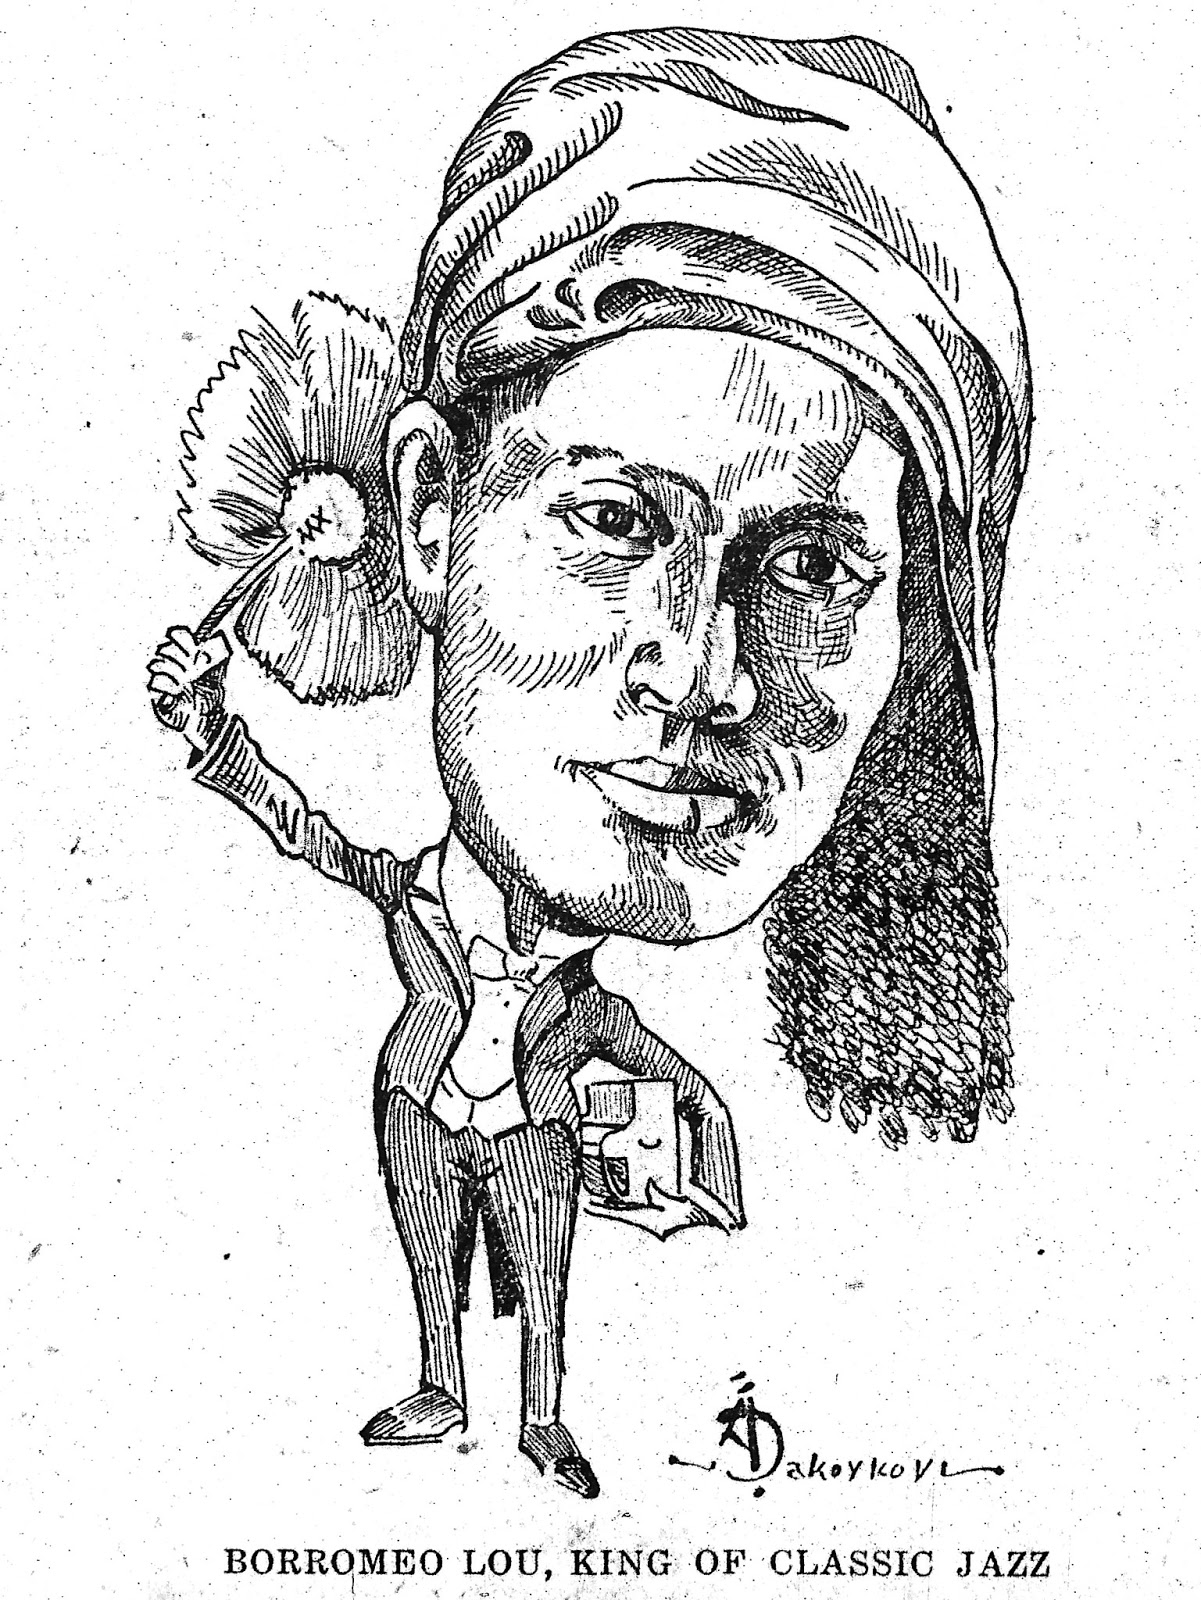 f g some borromeo lou positions Vaudeville Entertainers he worked the vaudeville circuit in the u s during the late 1910s and returned to the philippines in late 1921